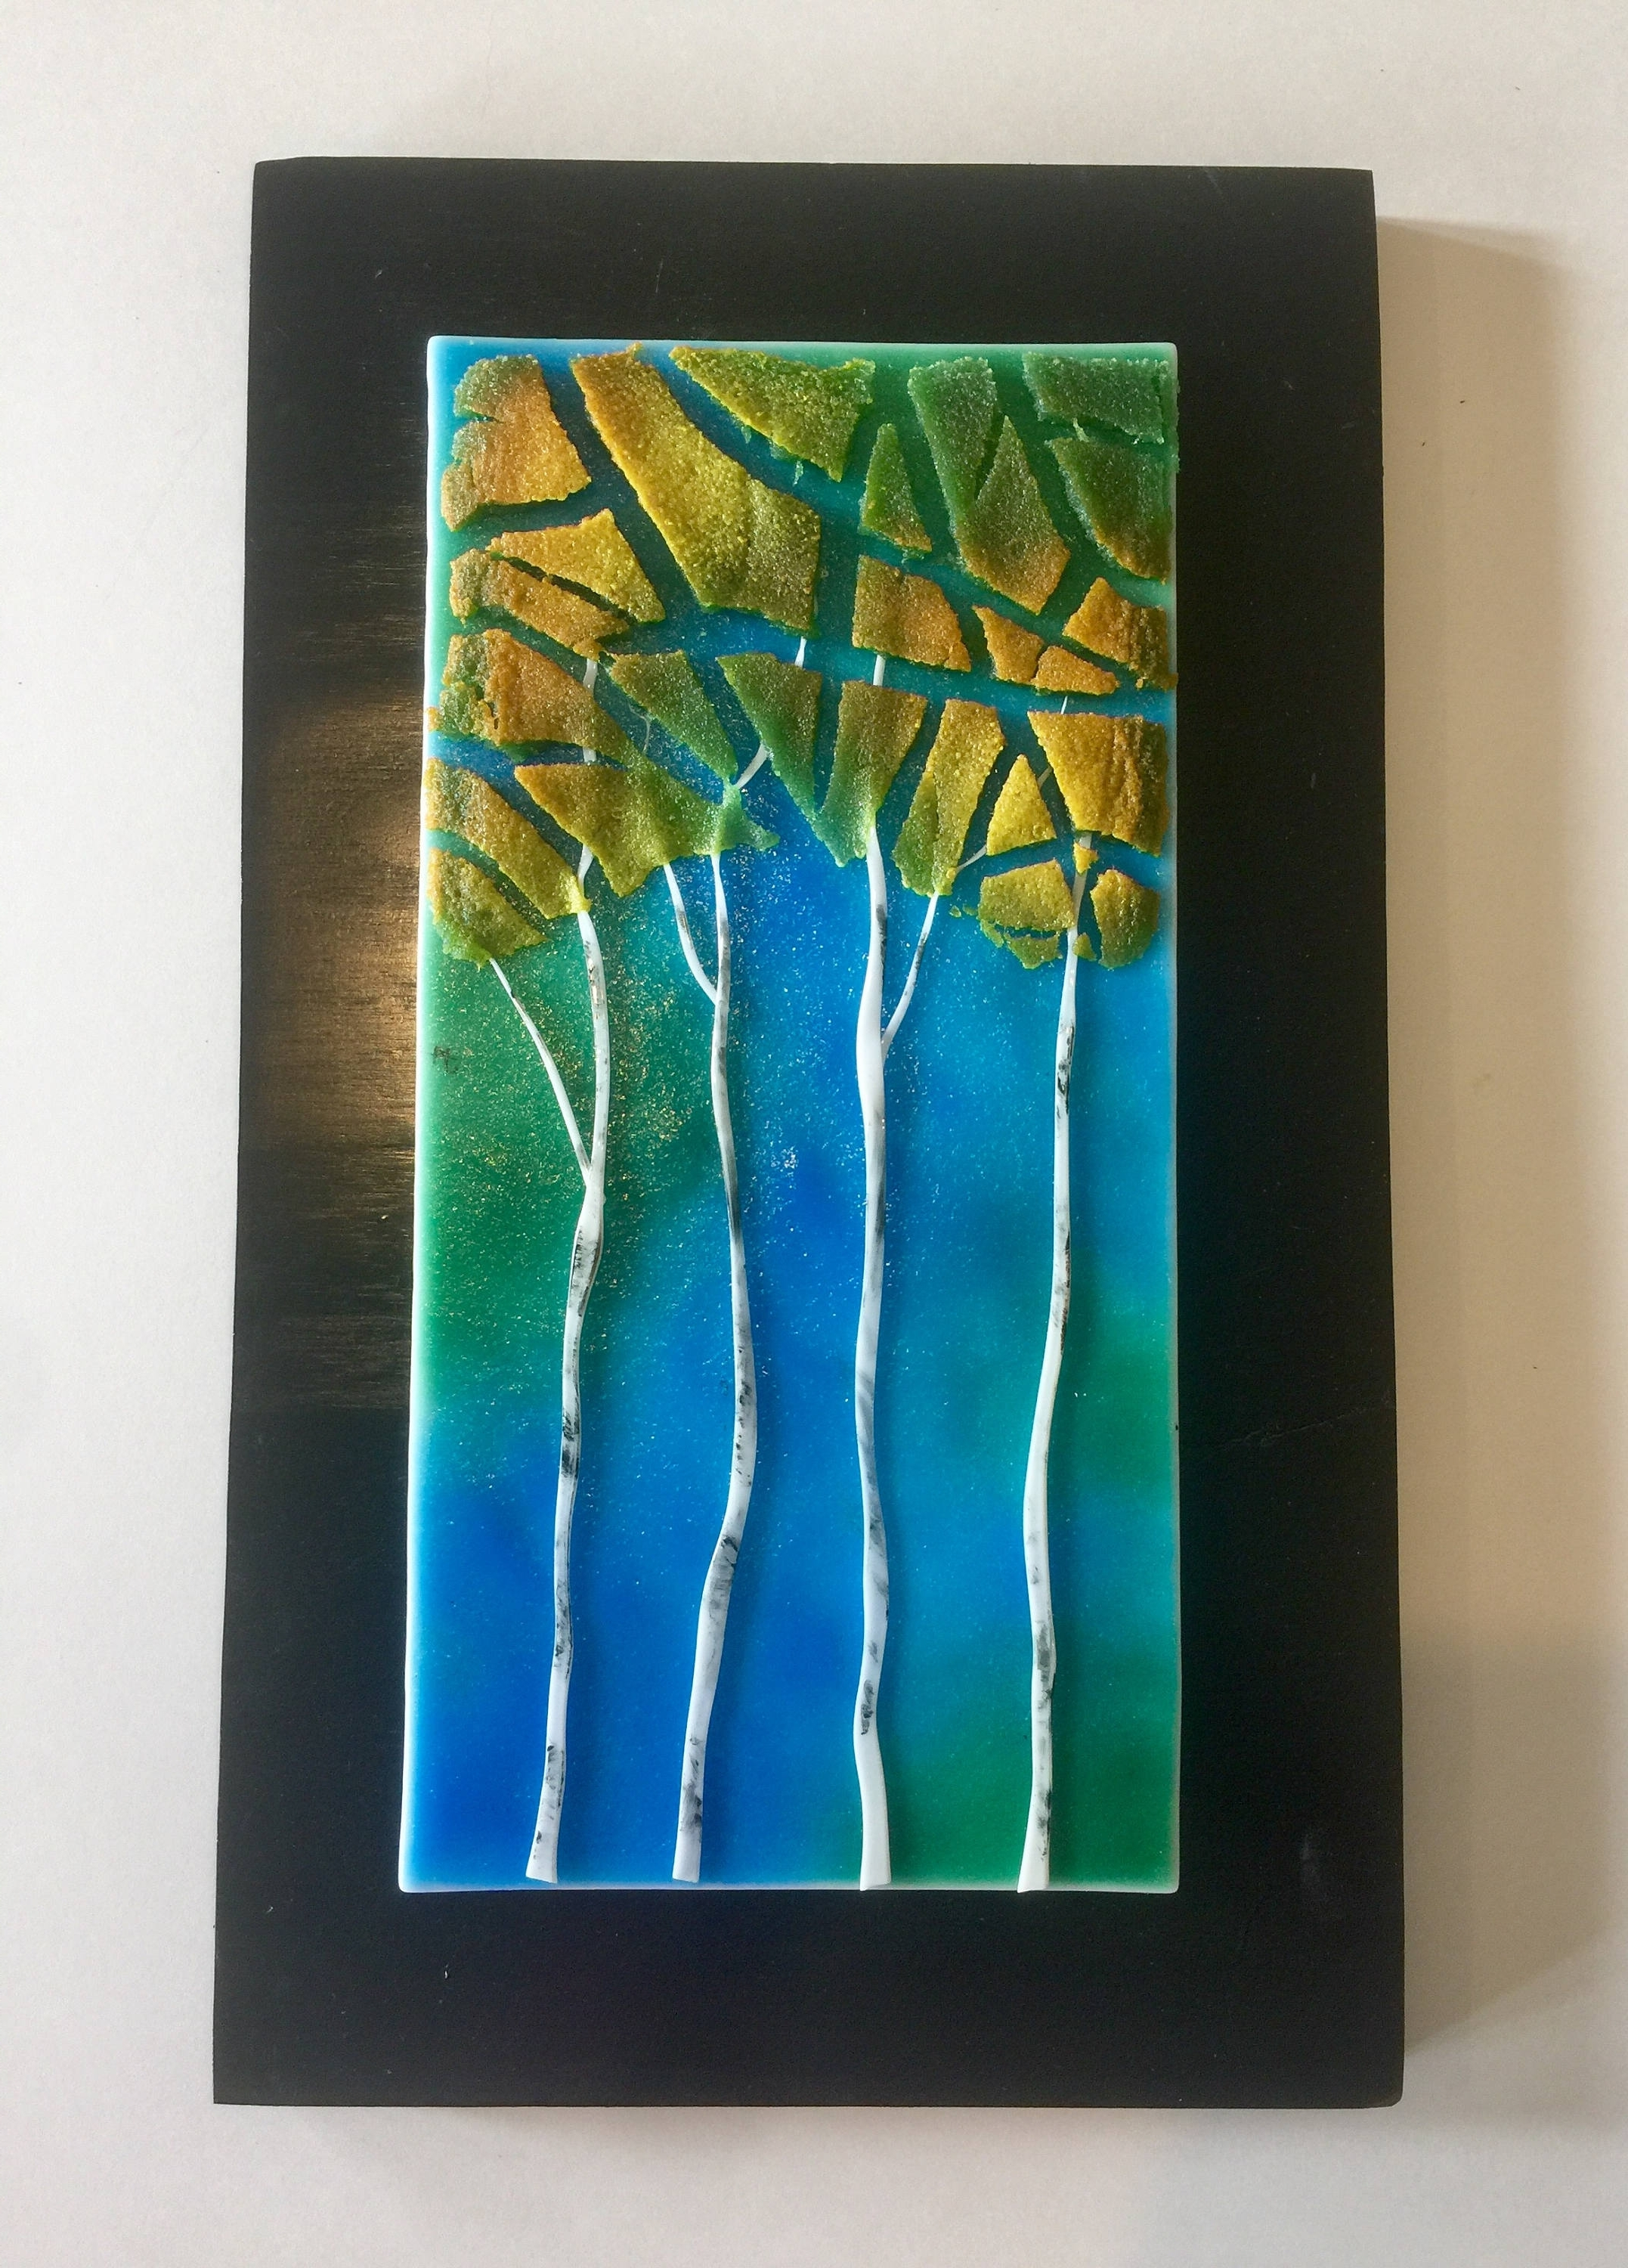 Fused Glass Art, Fused Glass, Handmade Fused Glass,fused Glass Pertaining To Most Current Cheap Fused Glass Wall Art (View 6 of 15)